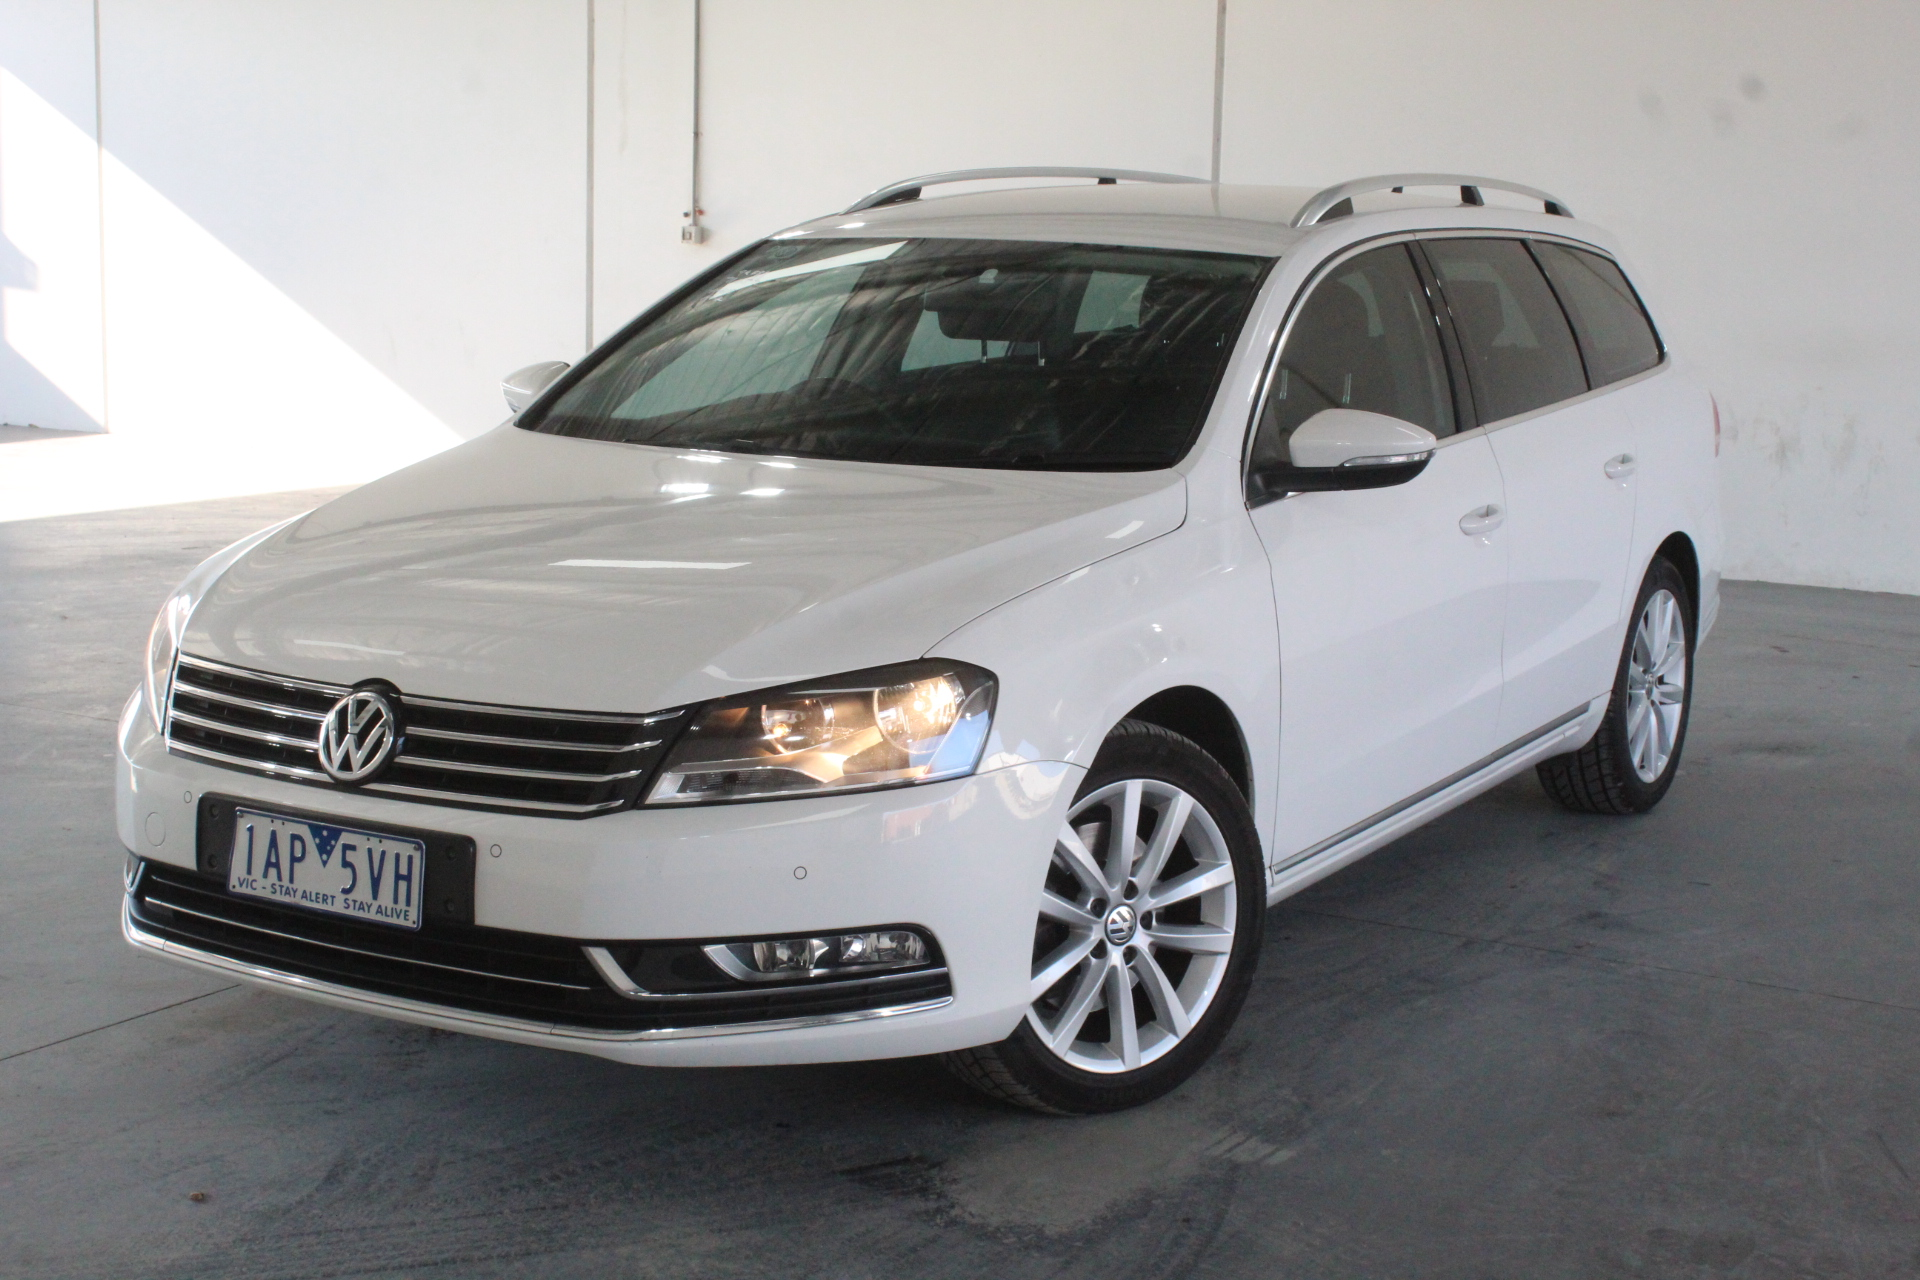 2013 Volkswagen Passat 130TDI HIGHLINE 3C Turbo Diesel Automatic Wagon